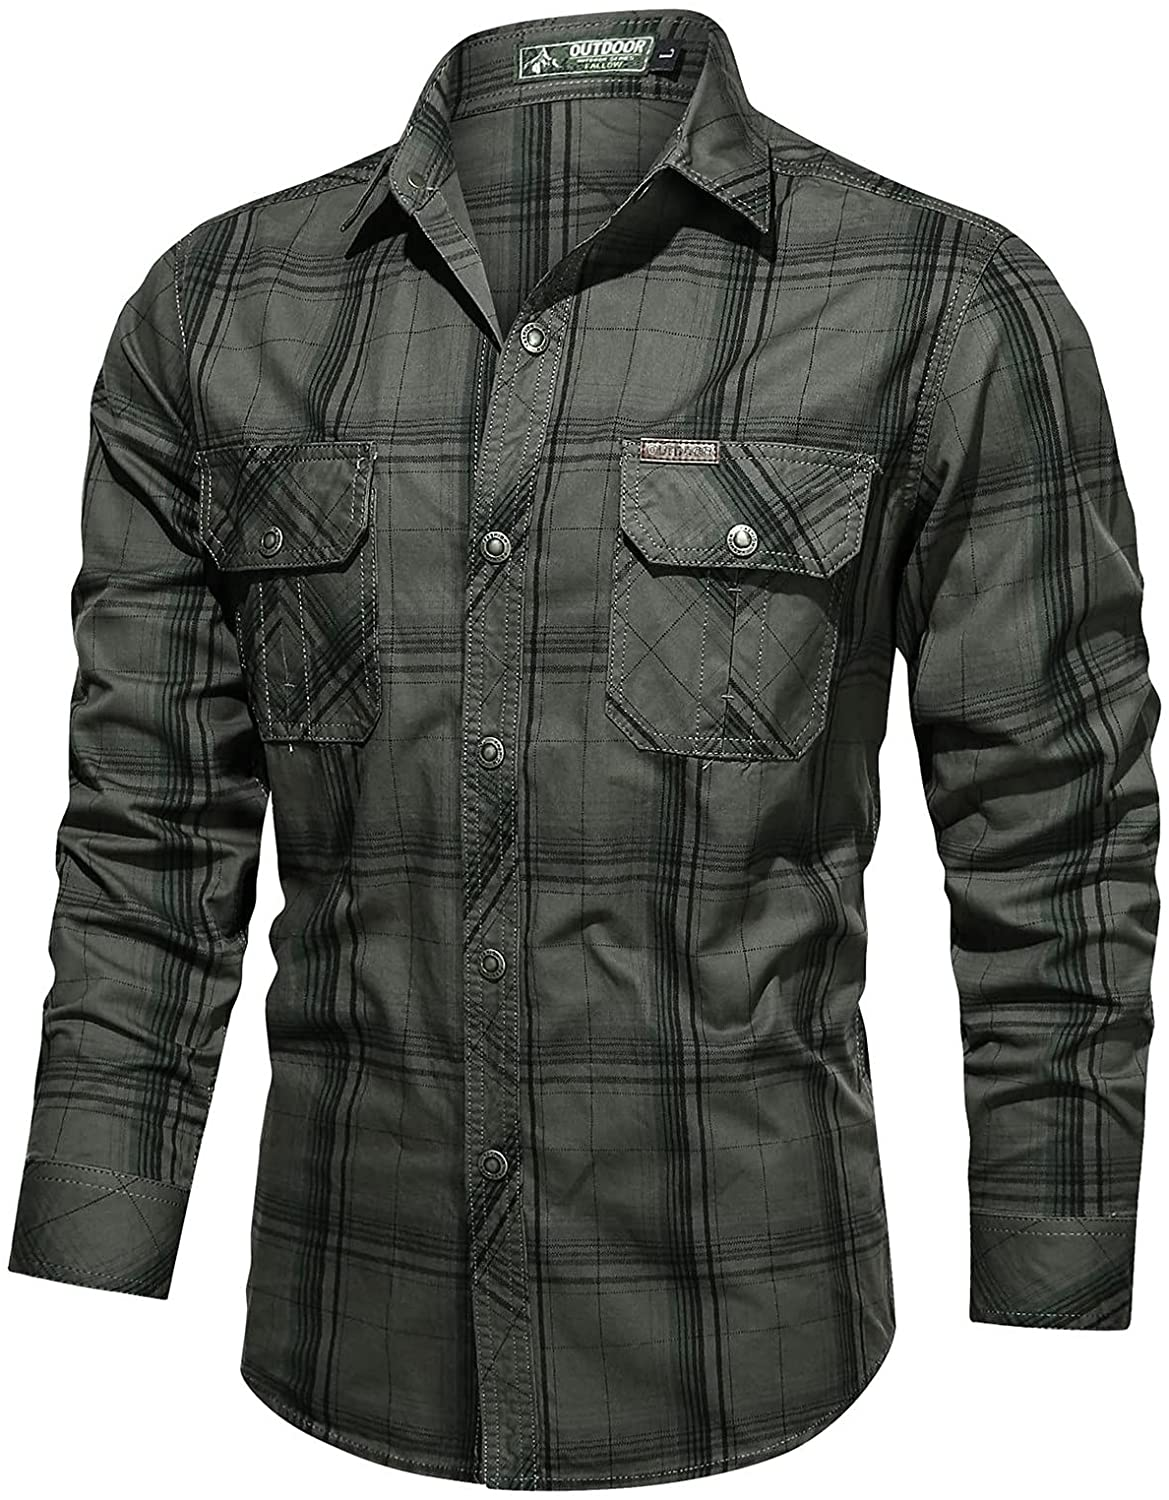 FUNEY Men's Tactical Cargo Work Shirt Casual Long Sleeve Button Down Hiking Shirts Military Slim Fit Outdoor Cotton Tops